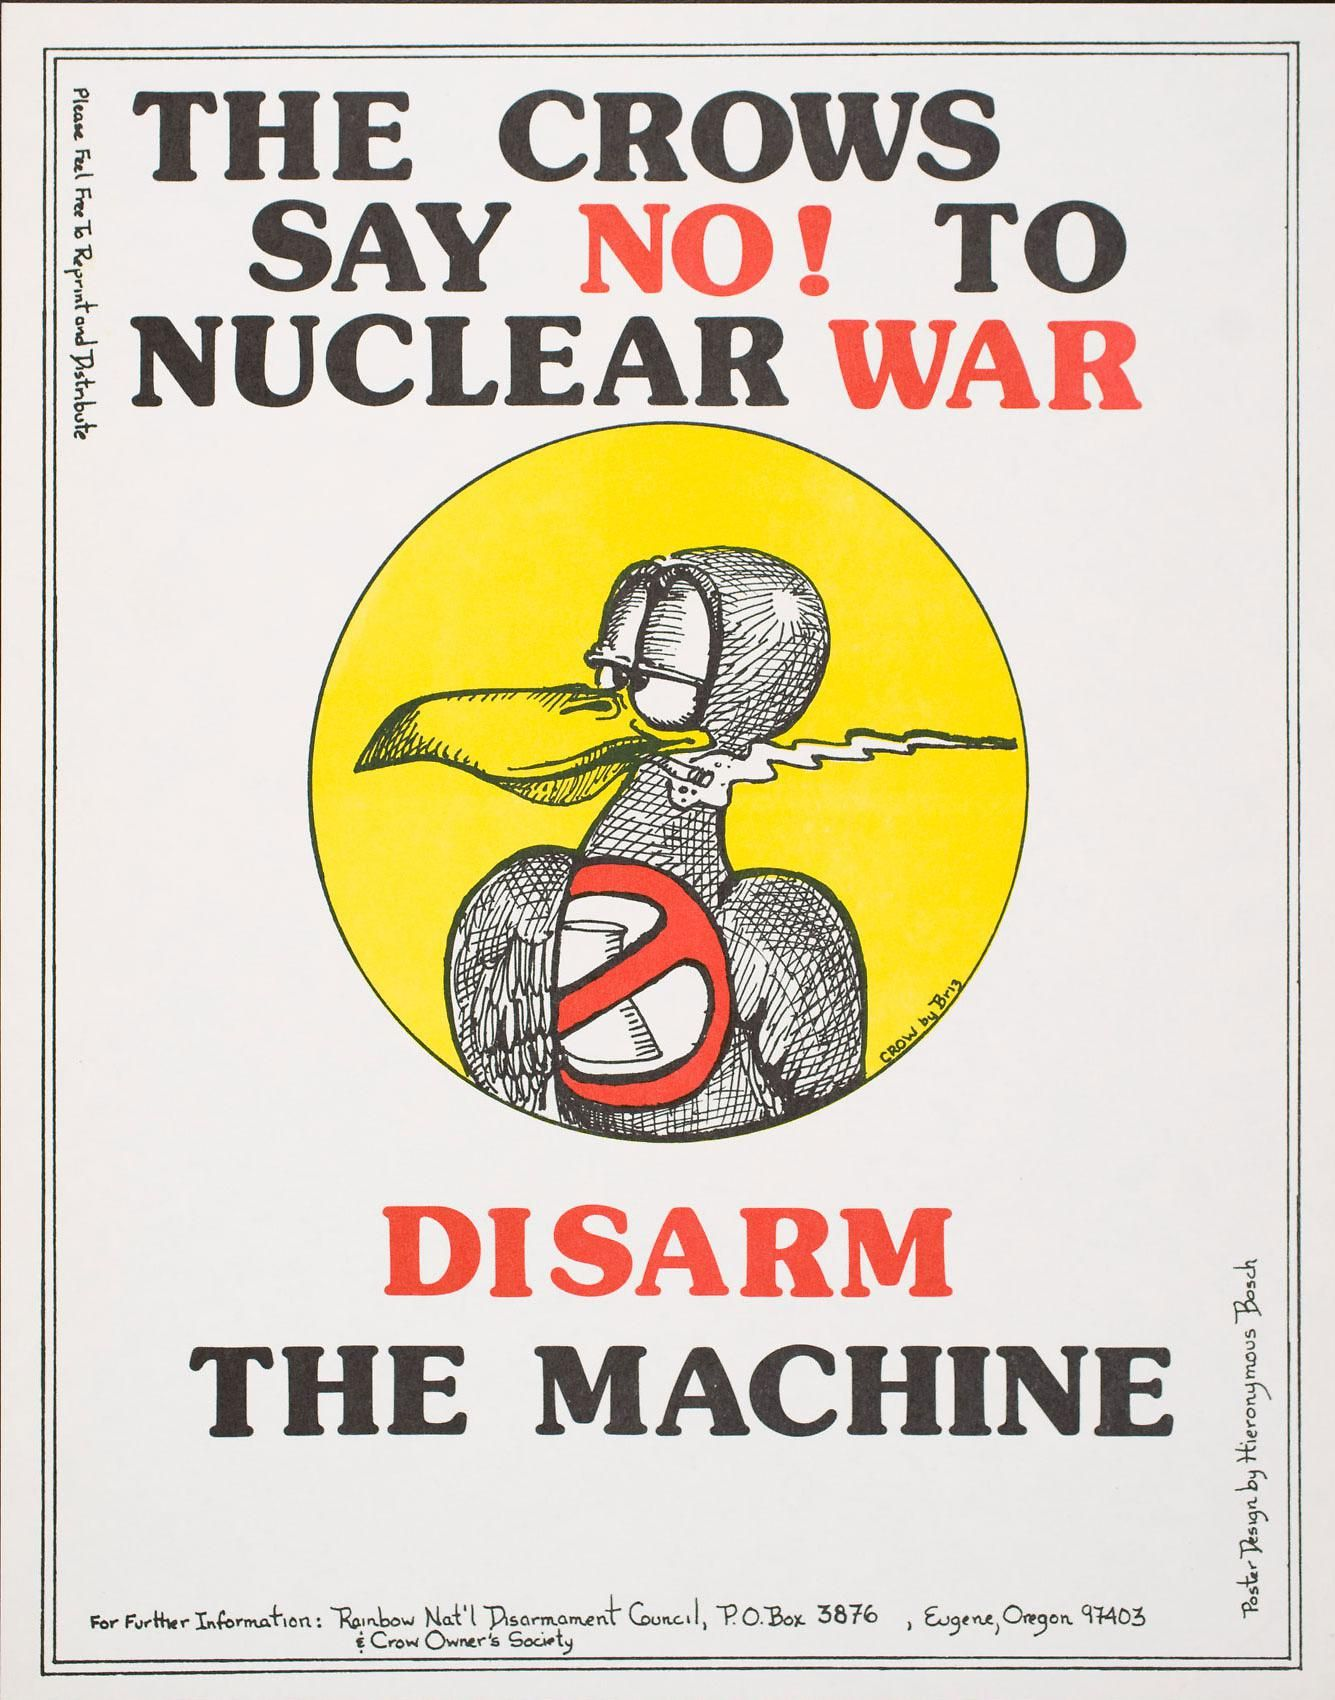 """Top of poster has the text: """"The Crows / Say No! To / Nuclear War"""". Below is a circle with a yellow background and a stylized drawing of a crow with heavy eyelids smoking a cigarette. On the crow's chest there is an image of a nuclear cooling tower covered by a red circle with a line through it. The bottom of the poster has the text: """"Disarm / The Machine / For Further Information: Rainbow Nat'l Disarmament Council, P.O. Box 3876, Eugene, Oregon 97403 / & Crow Owner's Society""""."""